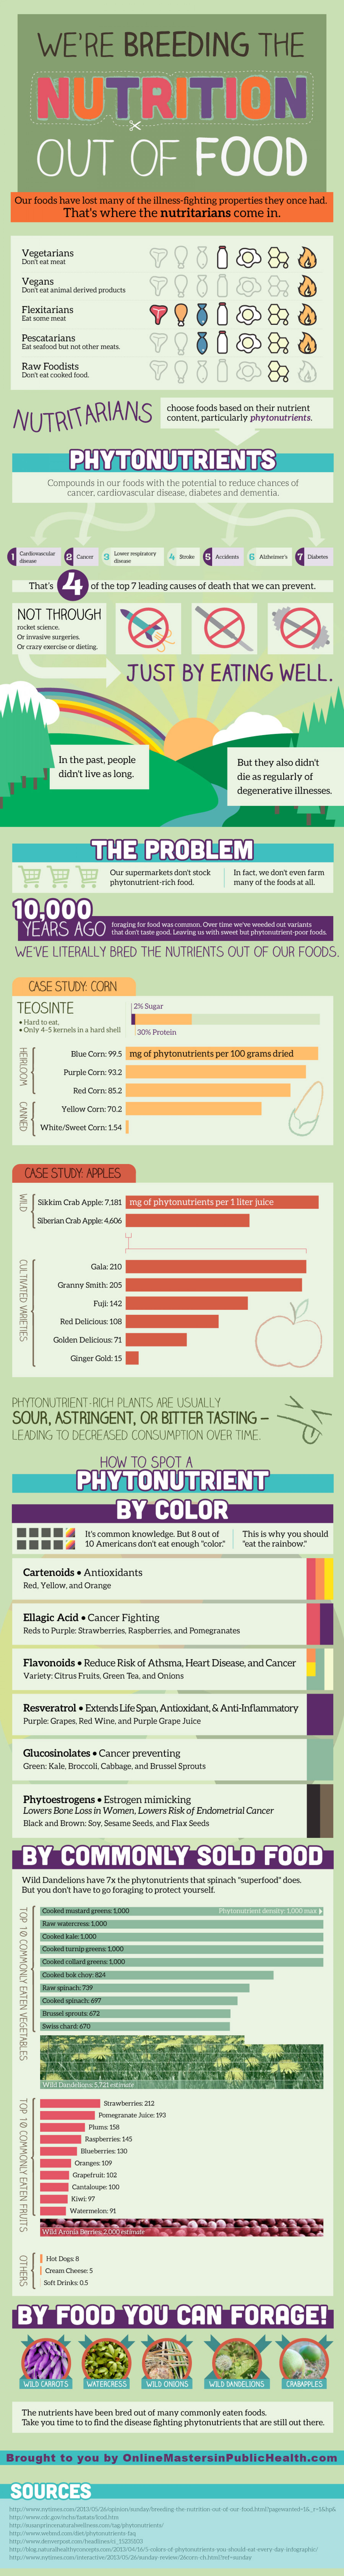 Breeding the nutrition out of food Infographic